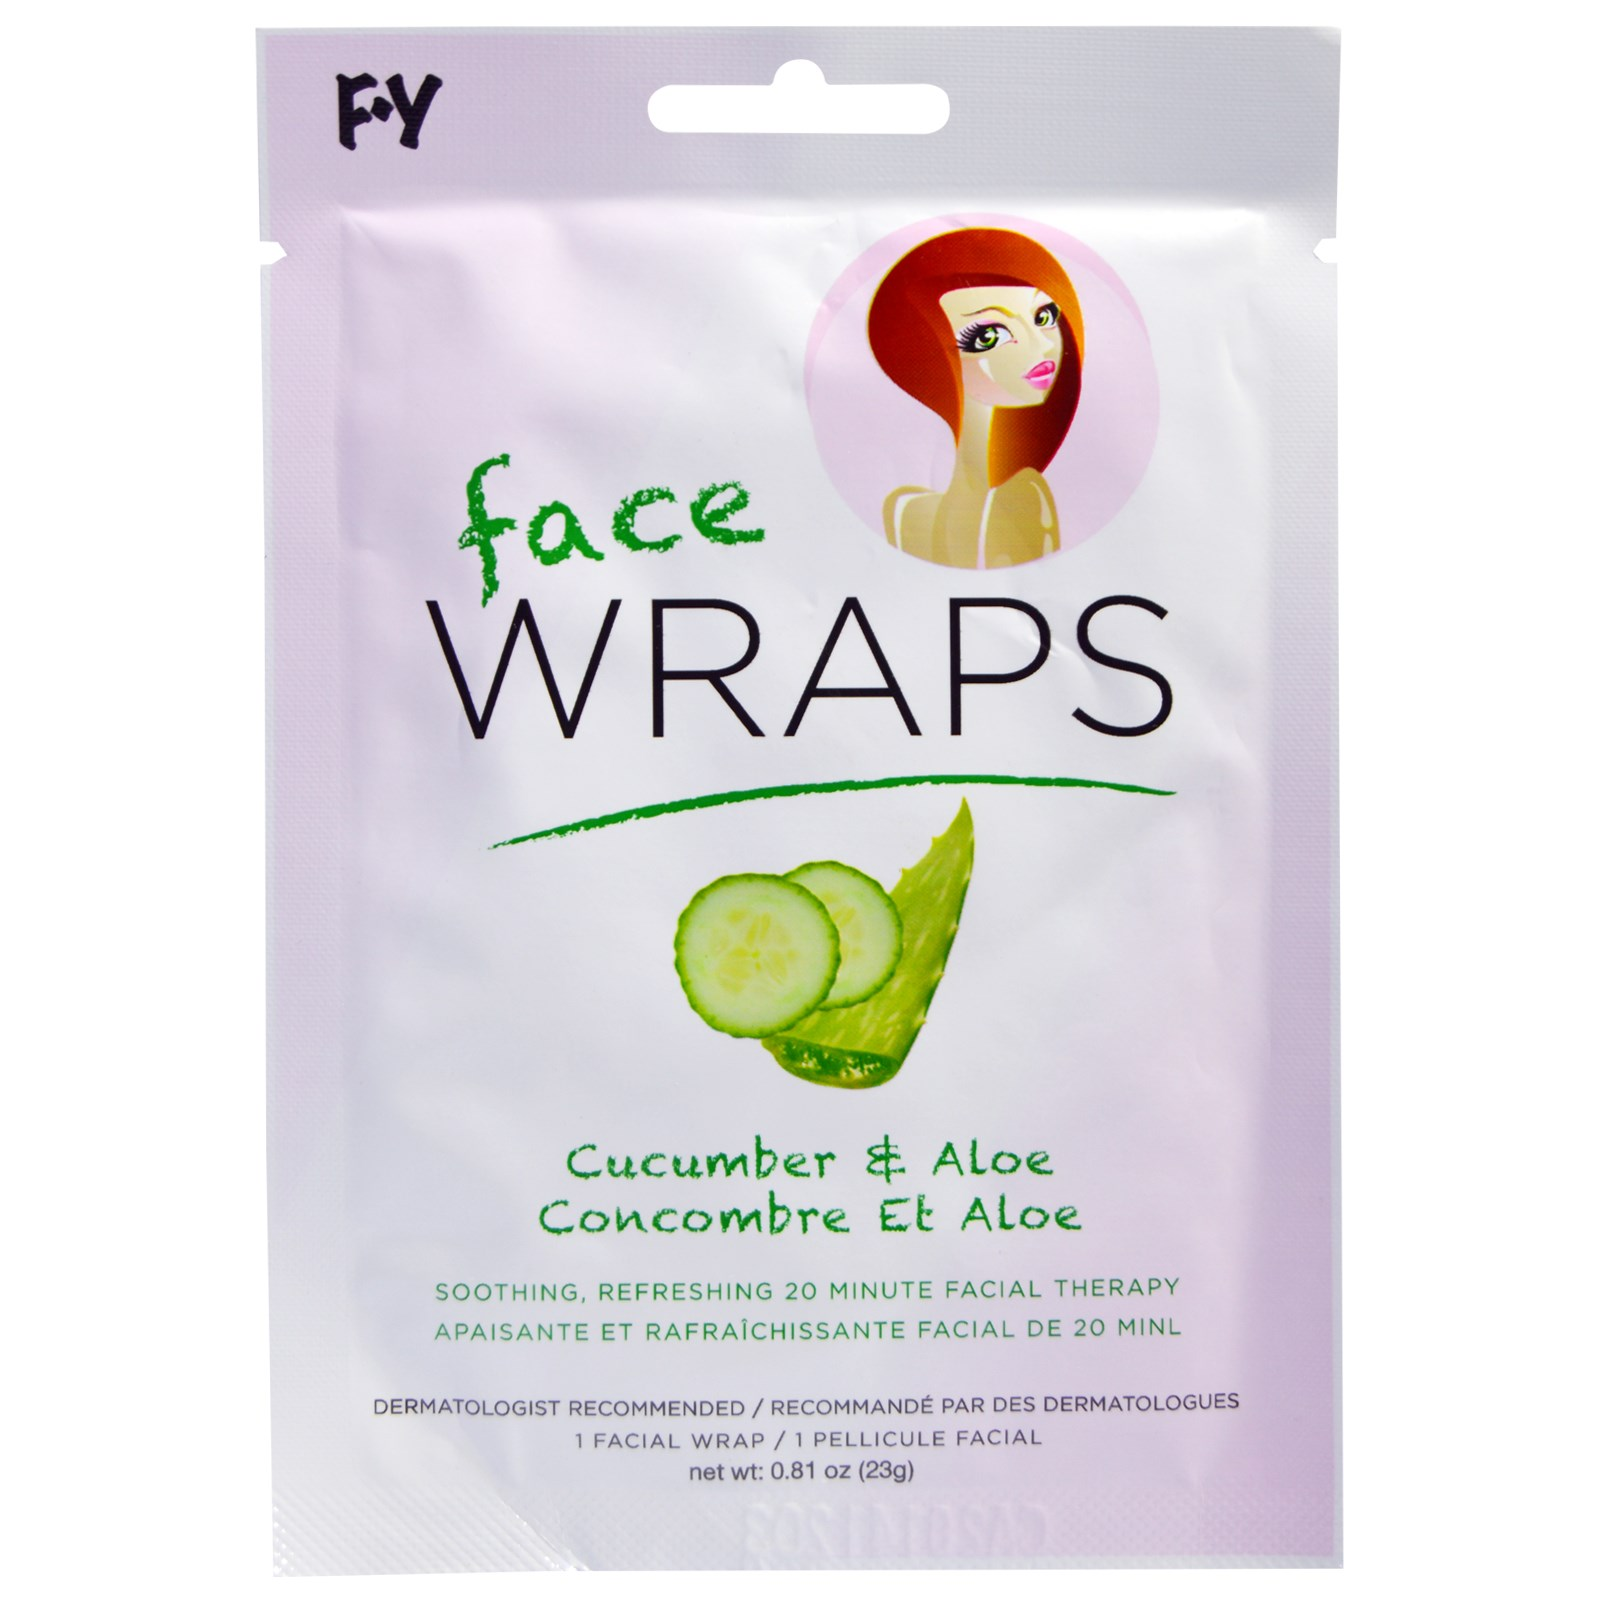 My Spa Life, Forever Luminous, Hydrating Facial Wrap, Face, 1 Facial Wrap, 0.81 oz(pack of 6) Arganicare Collagen Boost Anti Wrinkle Moisturizer Enriched with Organic Argan Oil for All Skin Types 1.7 fl. Oz.